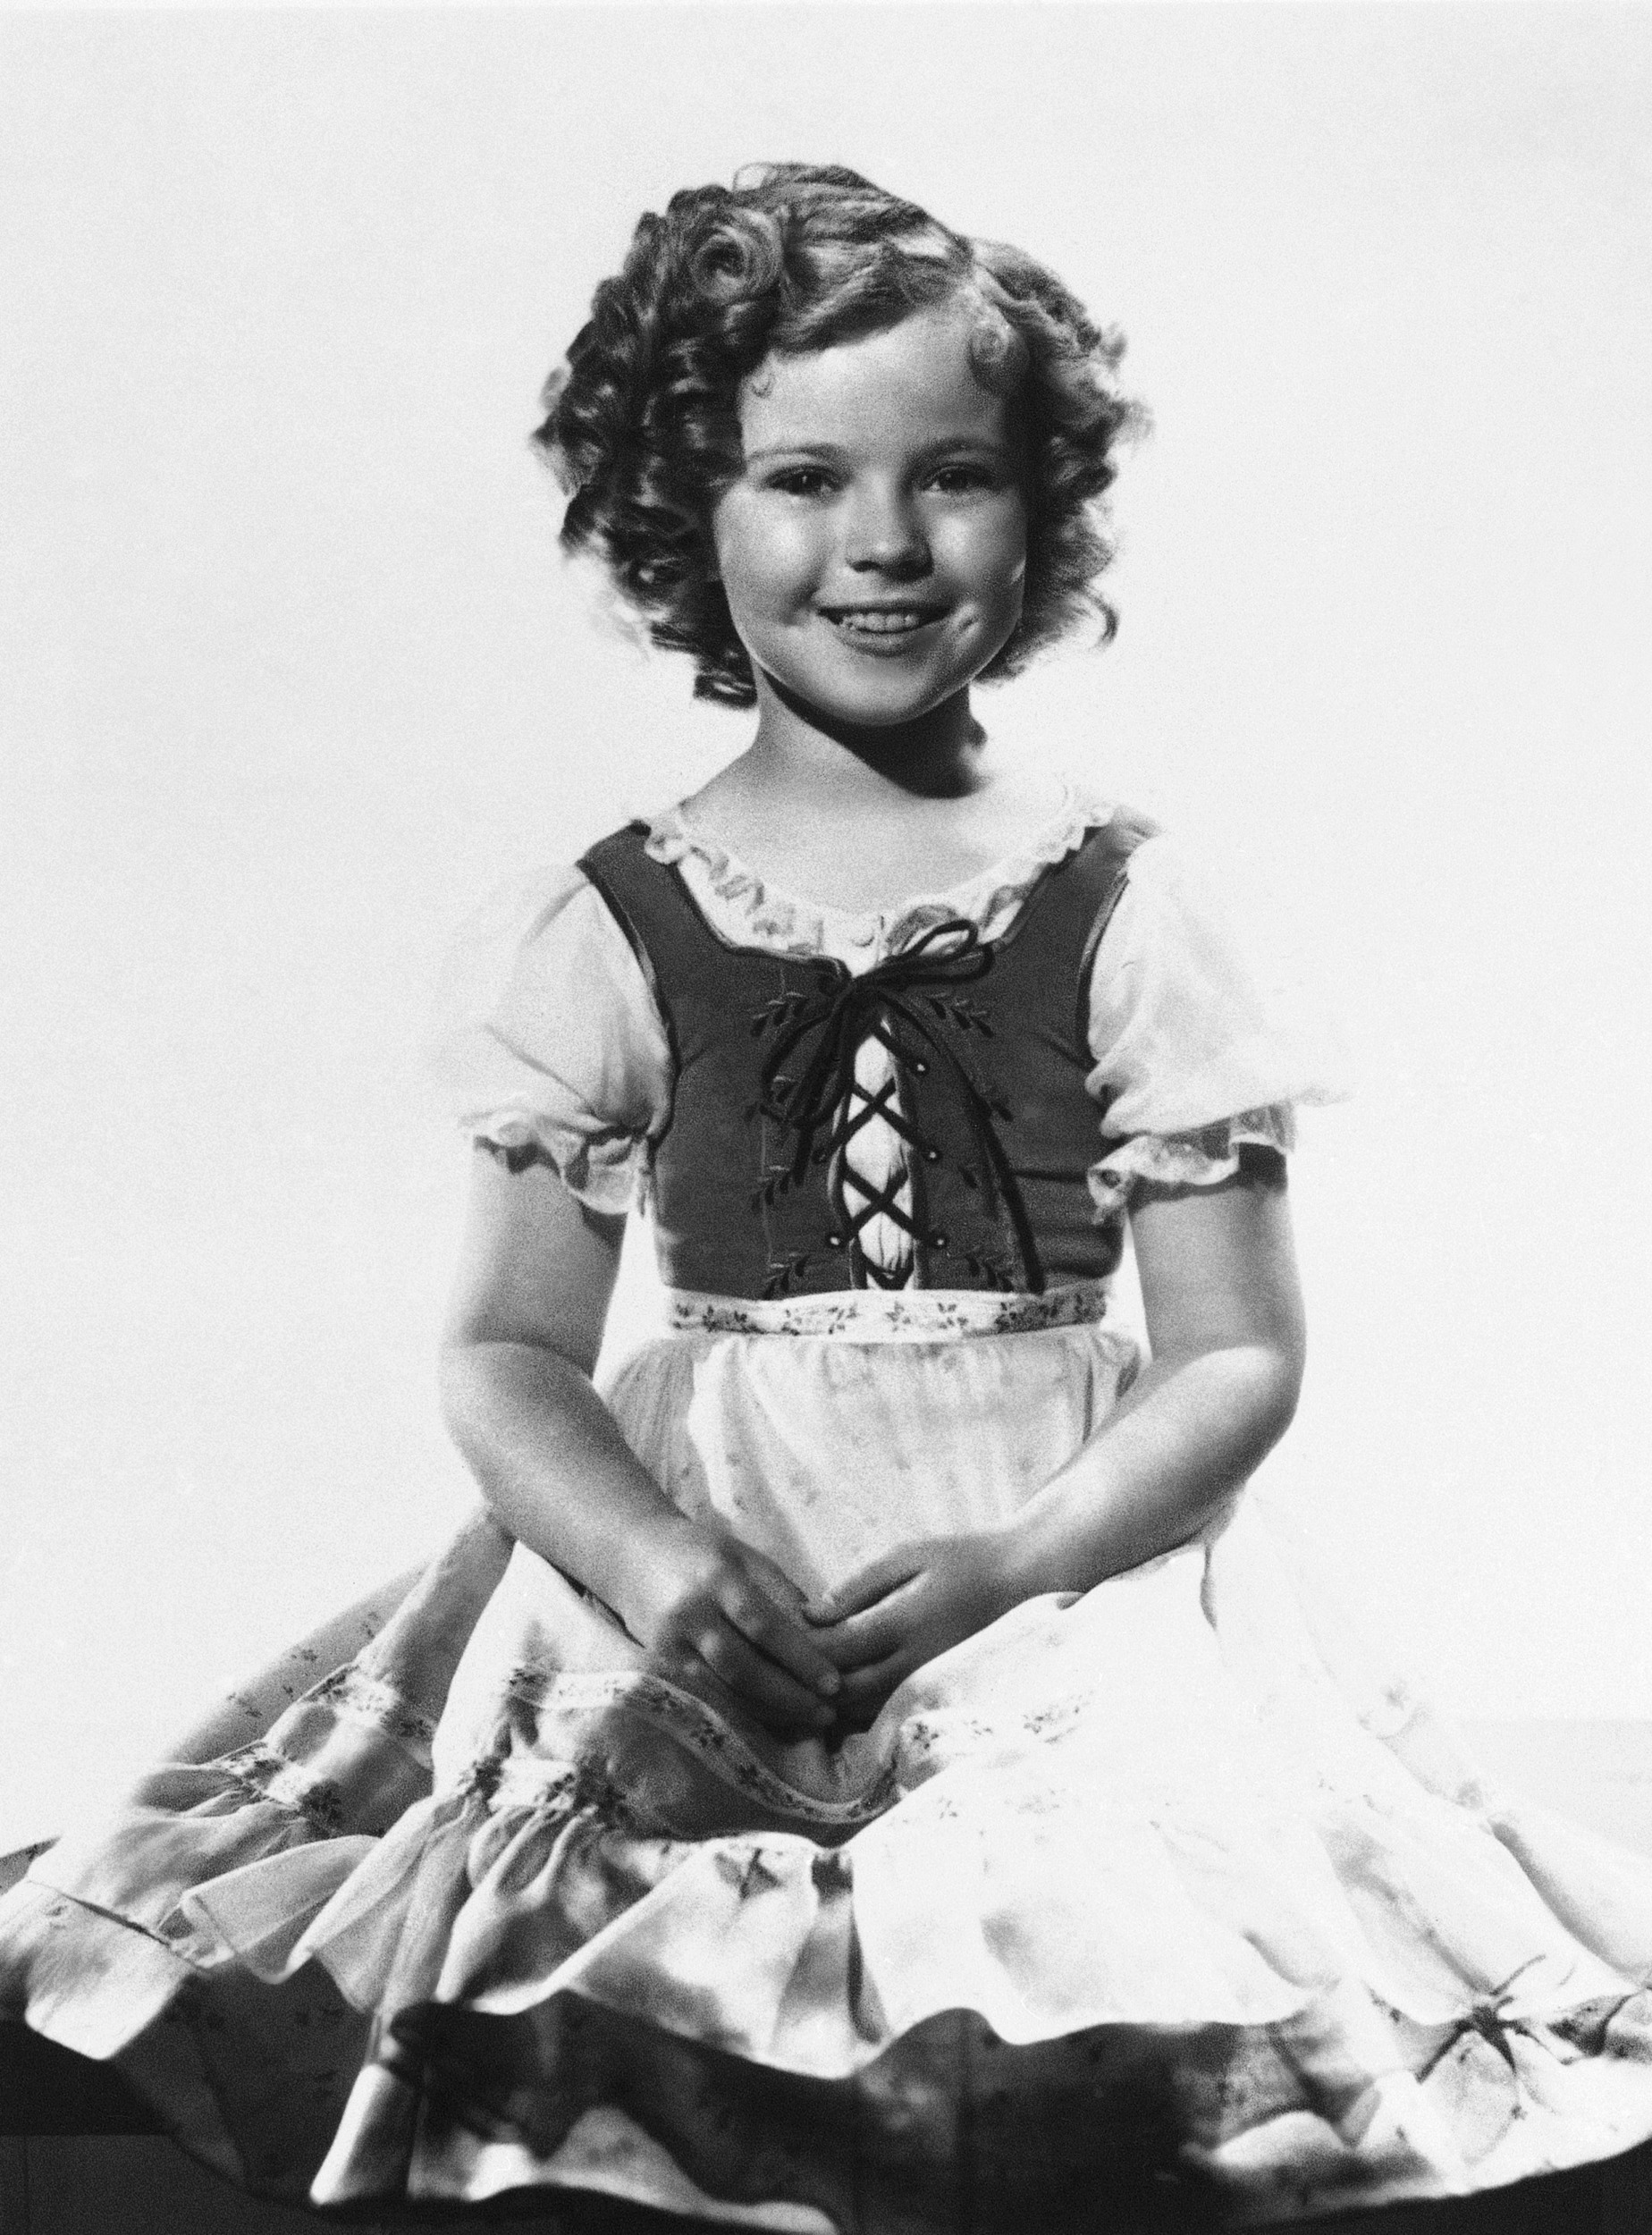 shirley temple iconic child star dies at 85